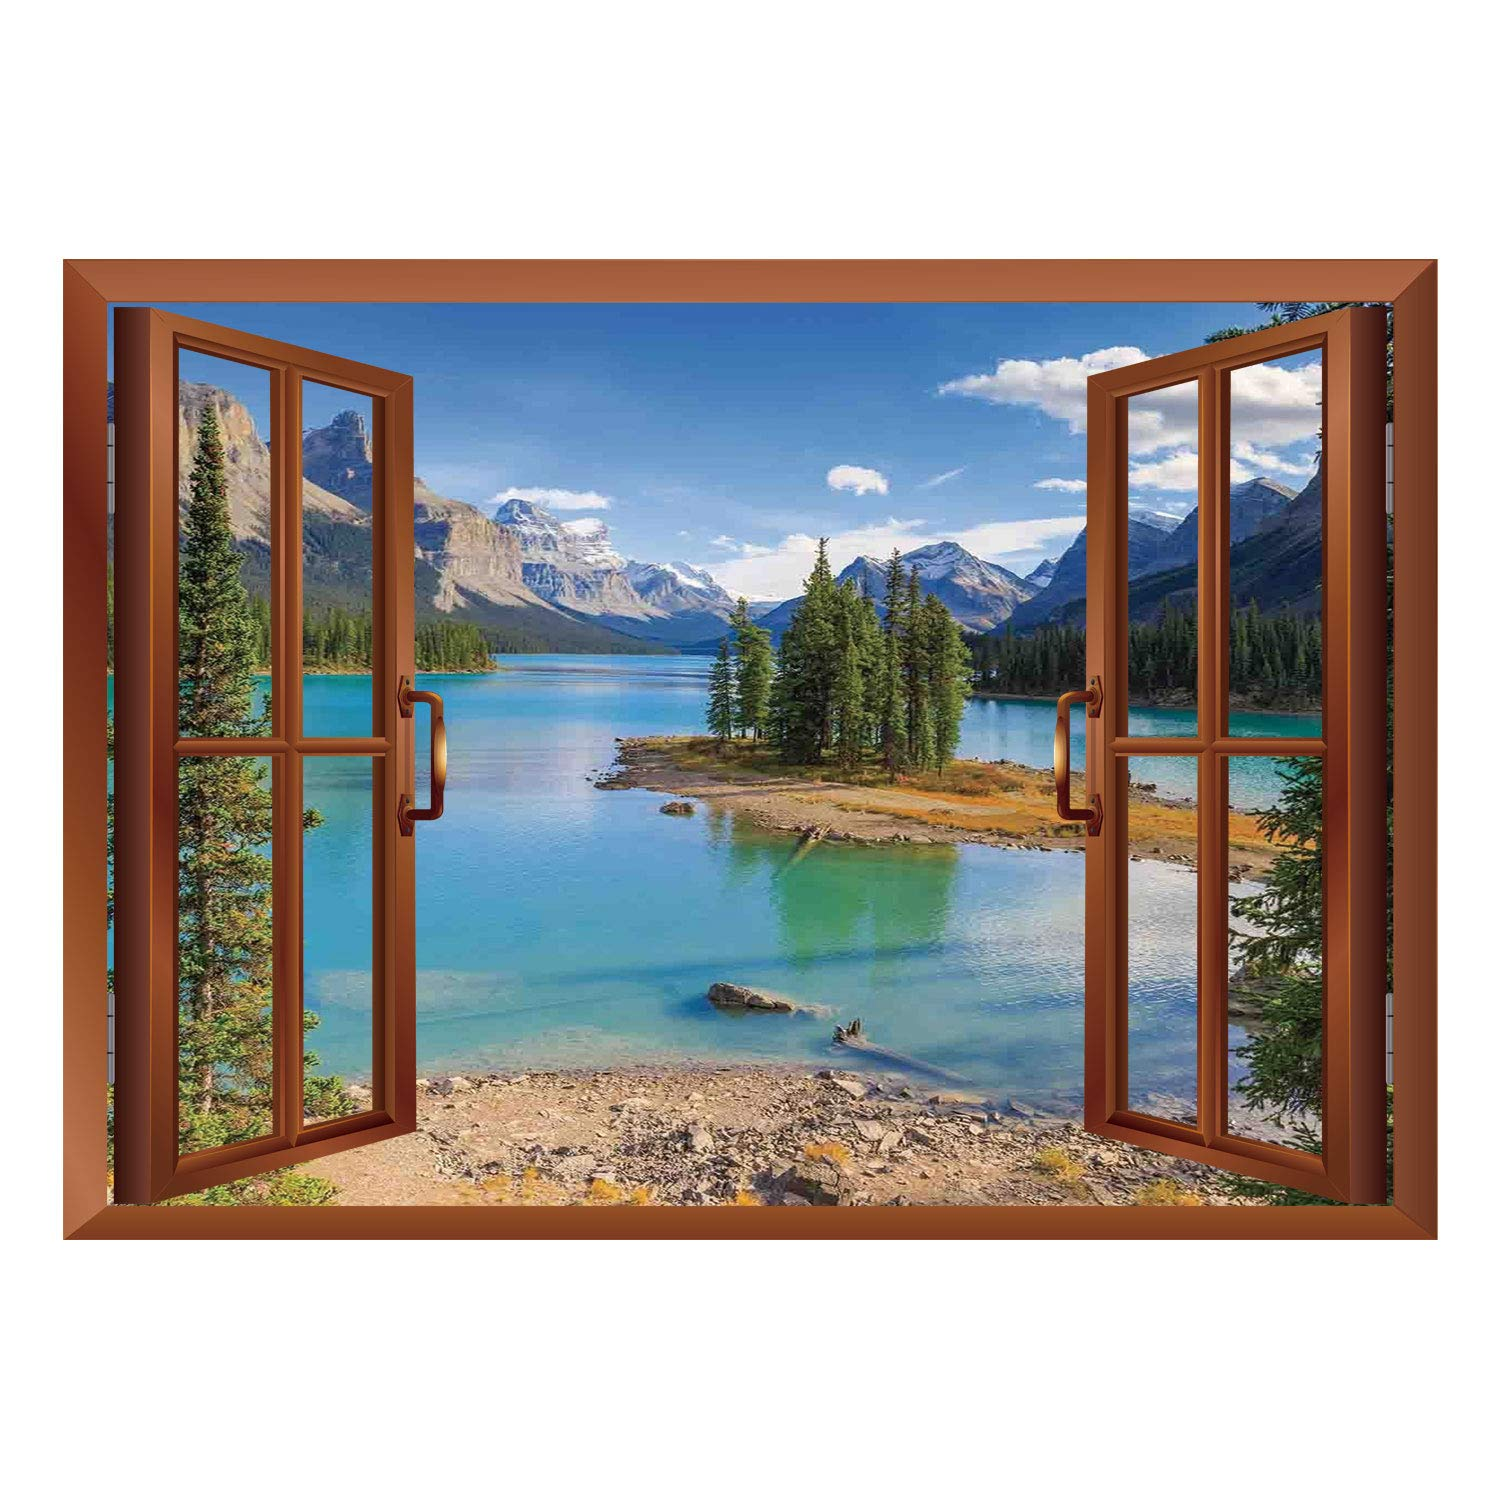 Scocici wall mural removable sticker home décor lake house decormaligne lake in jasper natioanal park alberta canada summer day outdoor picturegreen